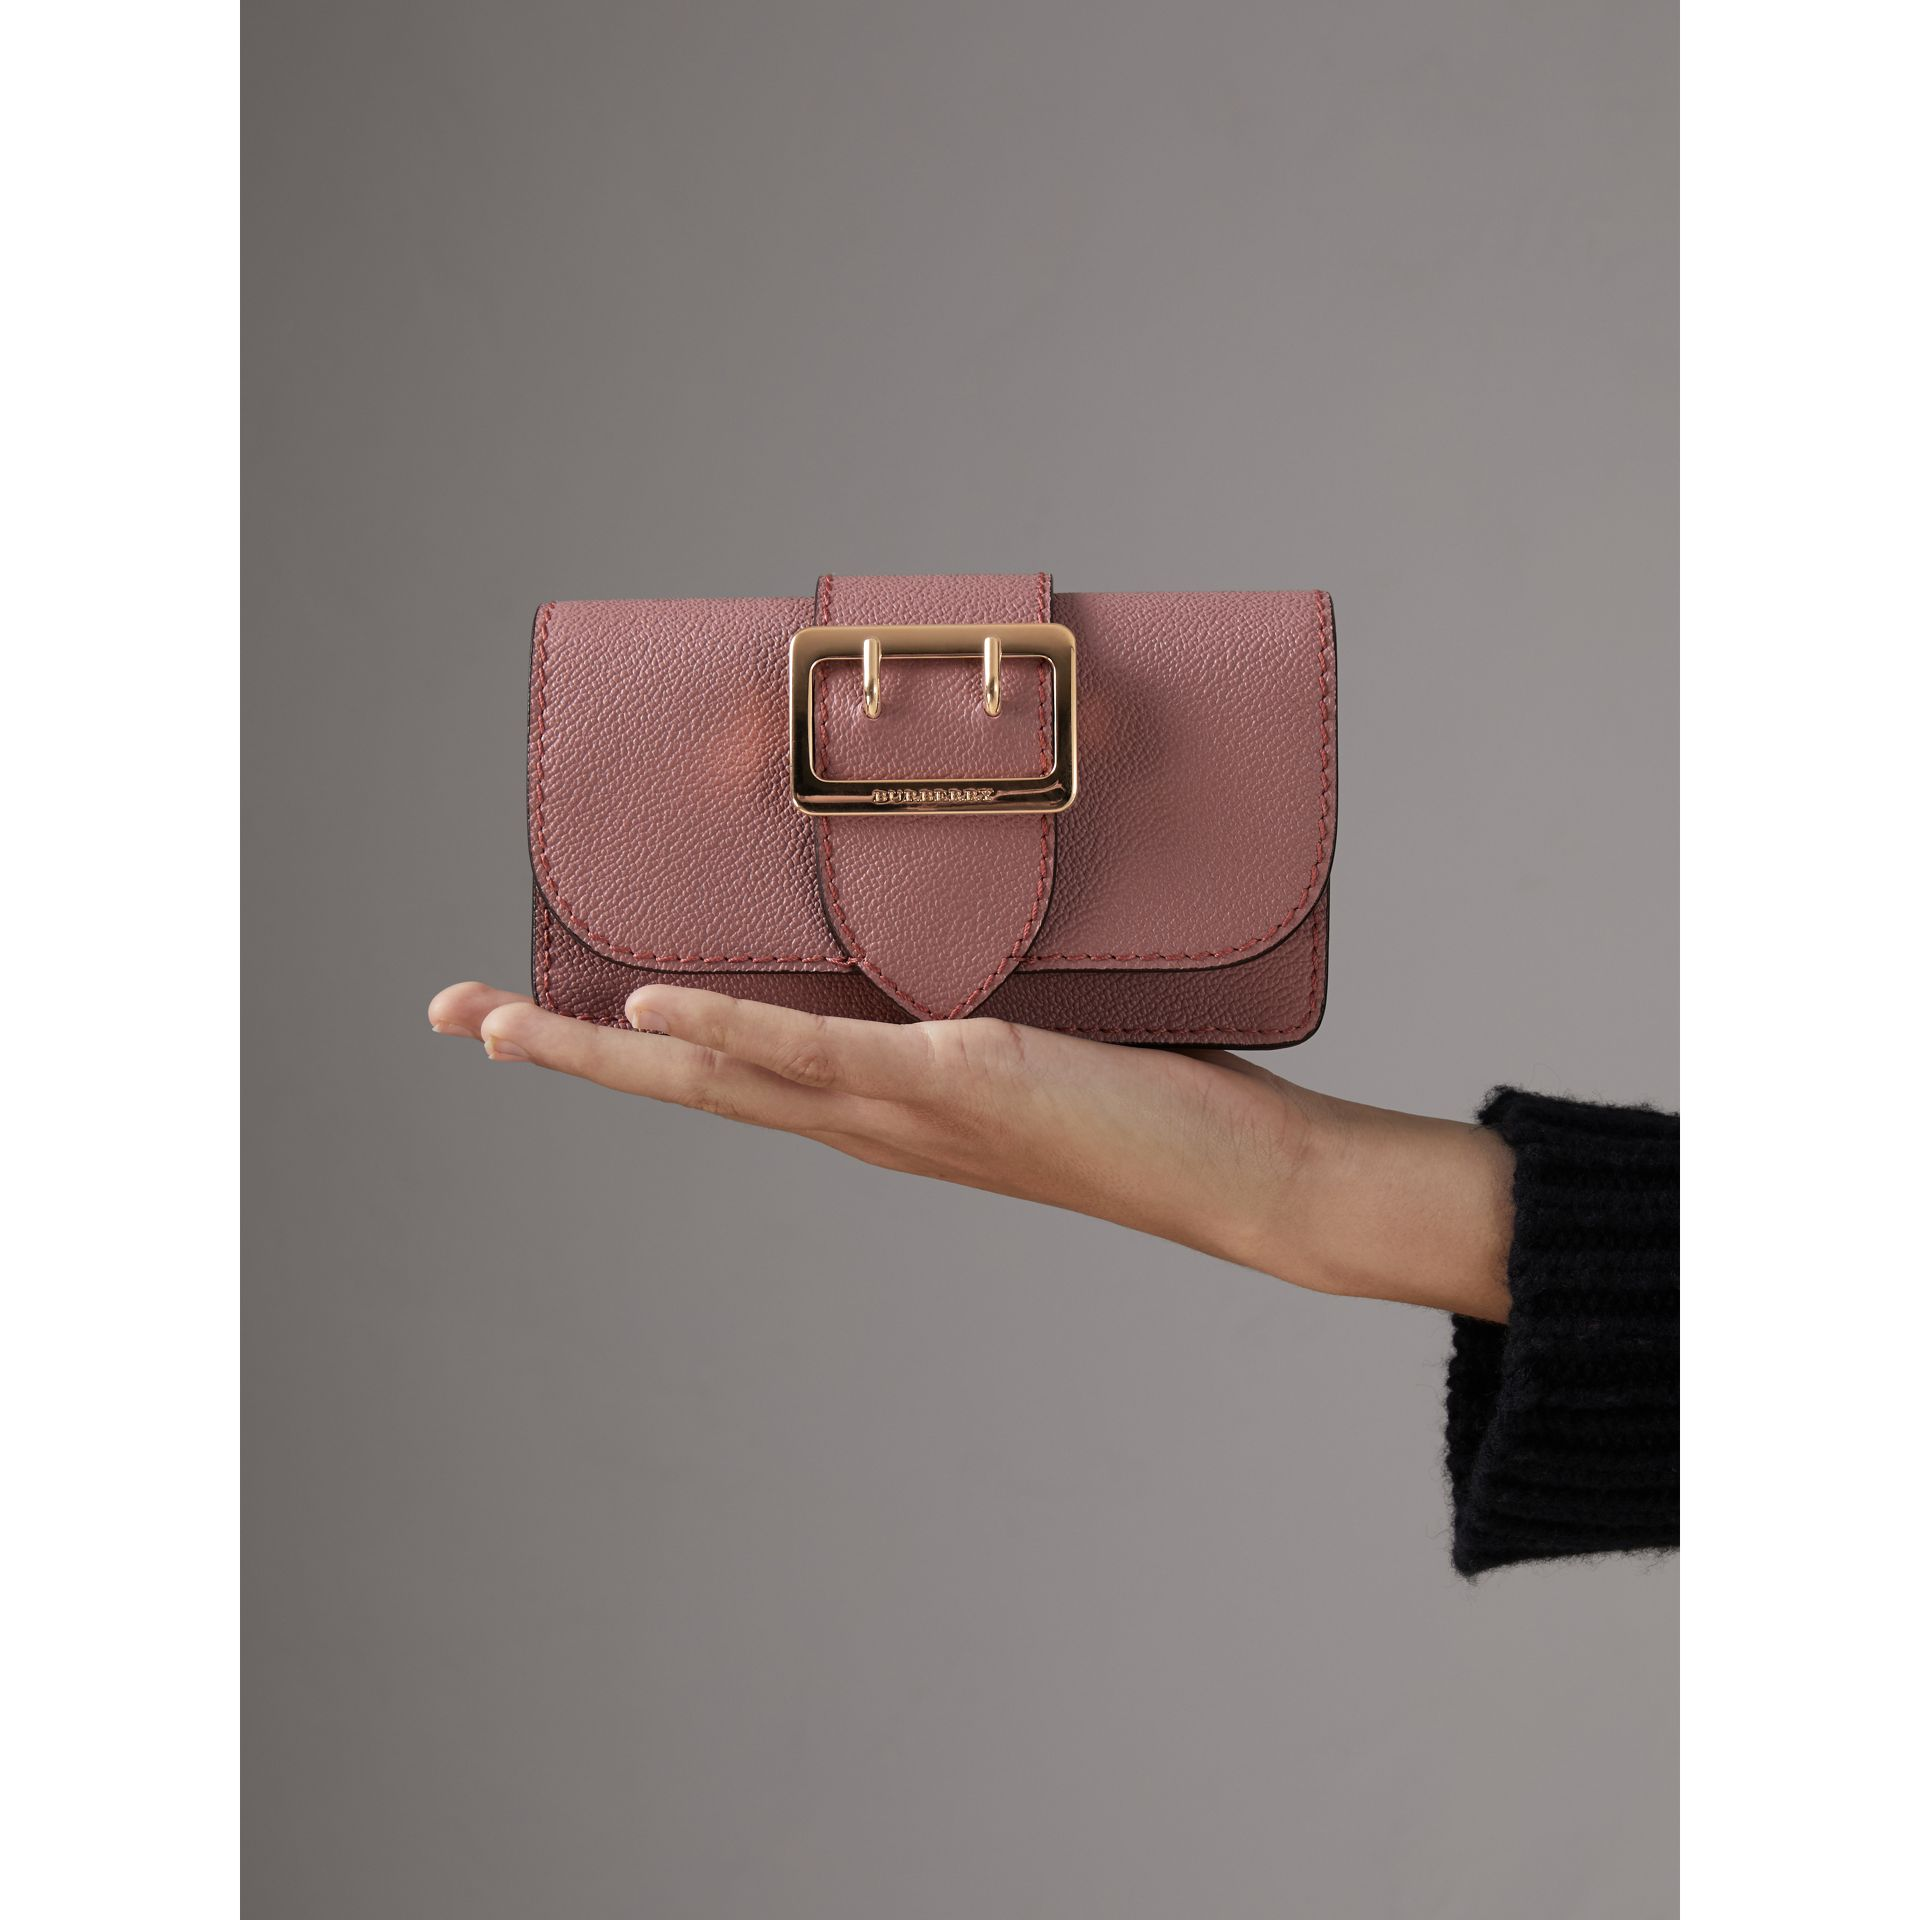 The Mini Buckle Bag in Grainy Leather in Dusty Pink - Women | Burberry - gallery image 10